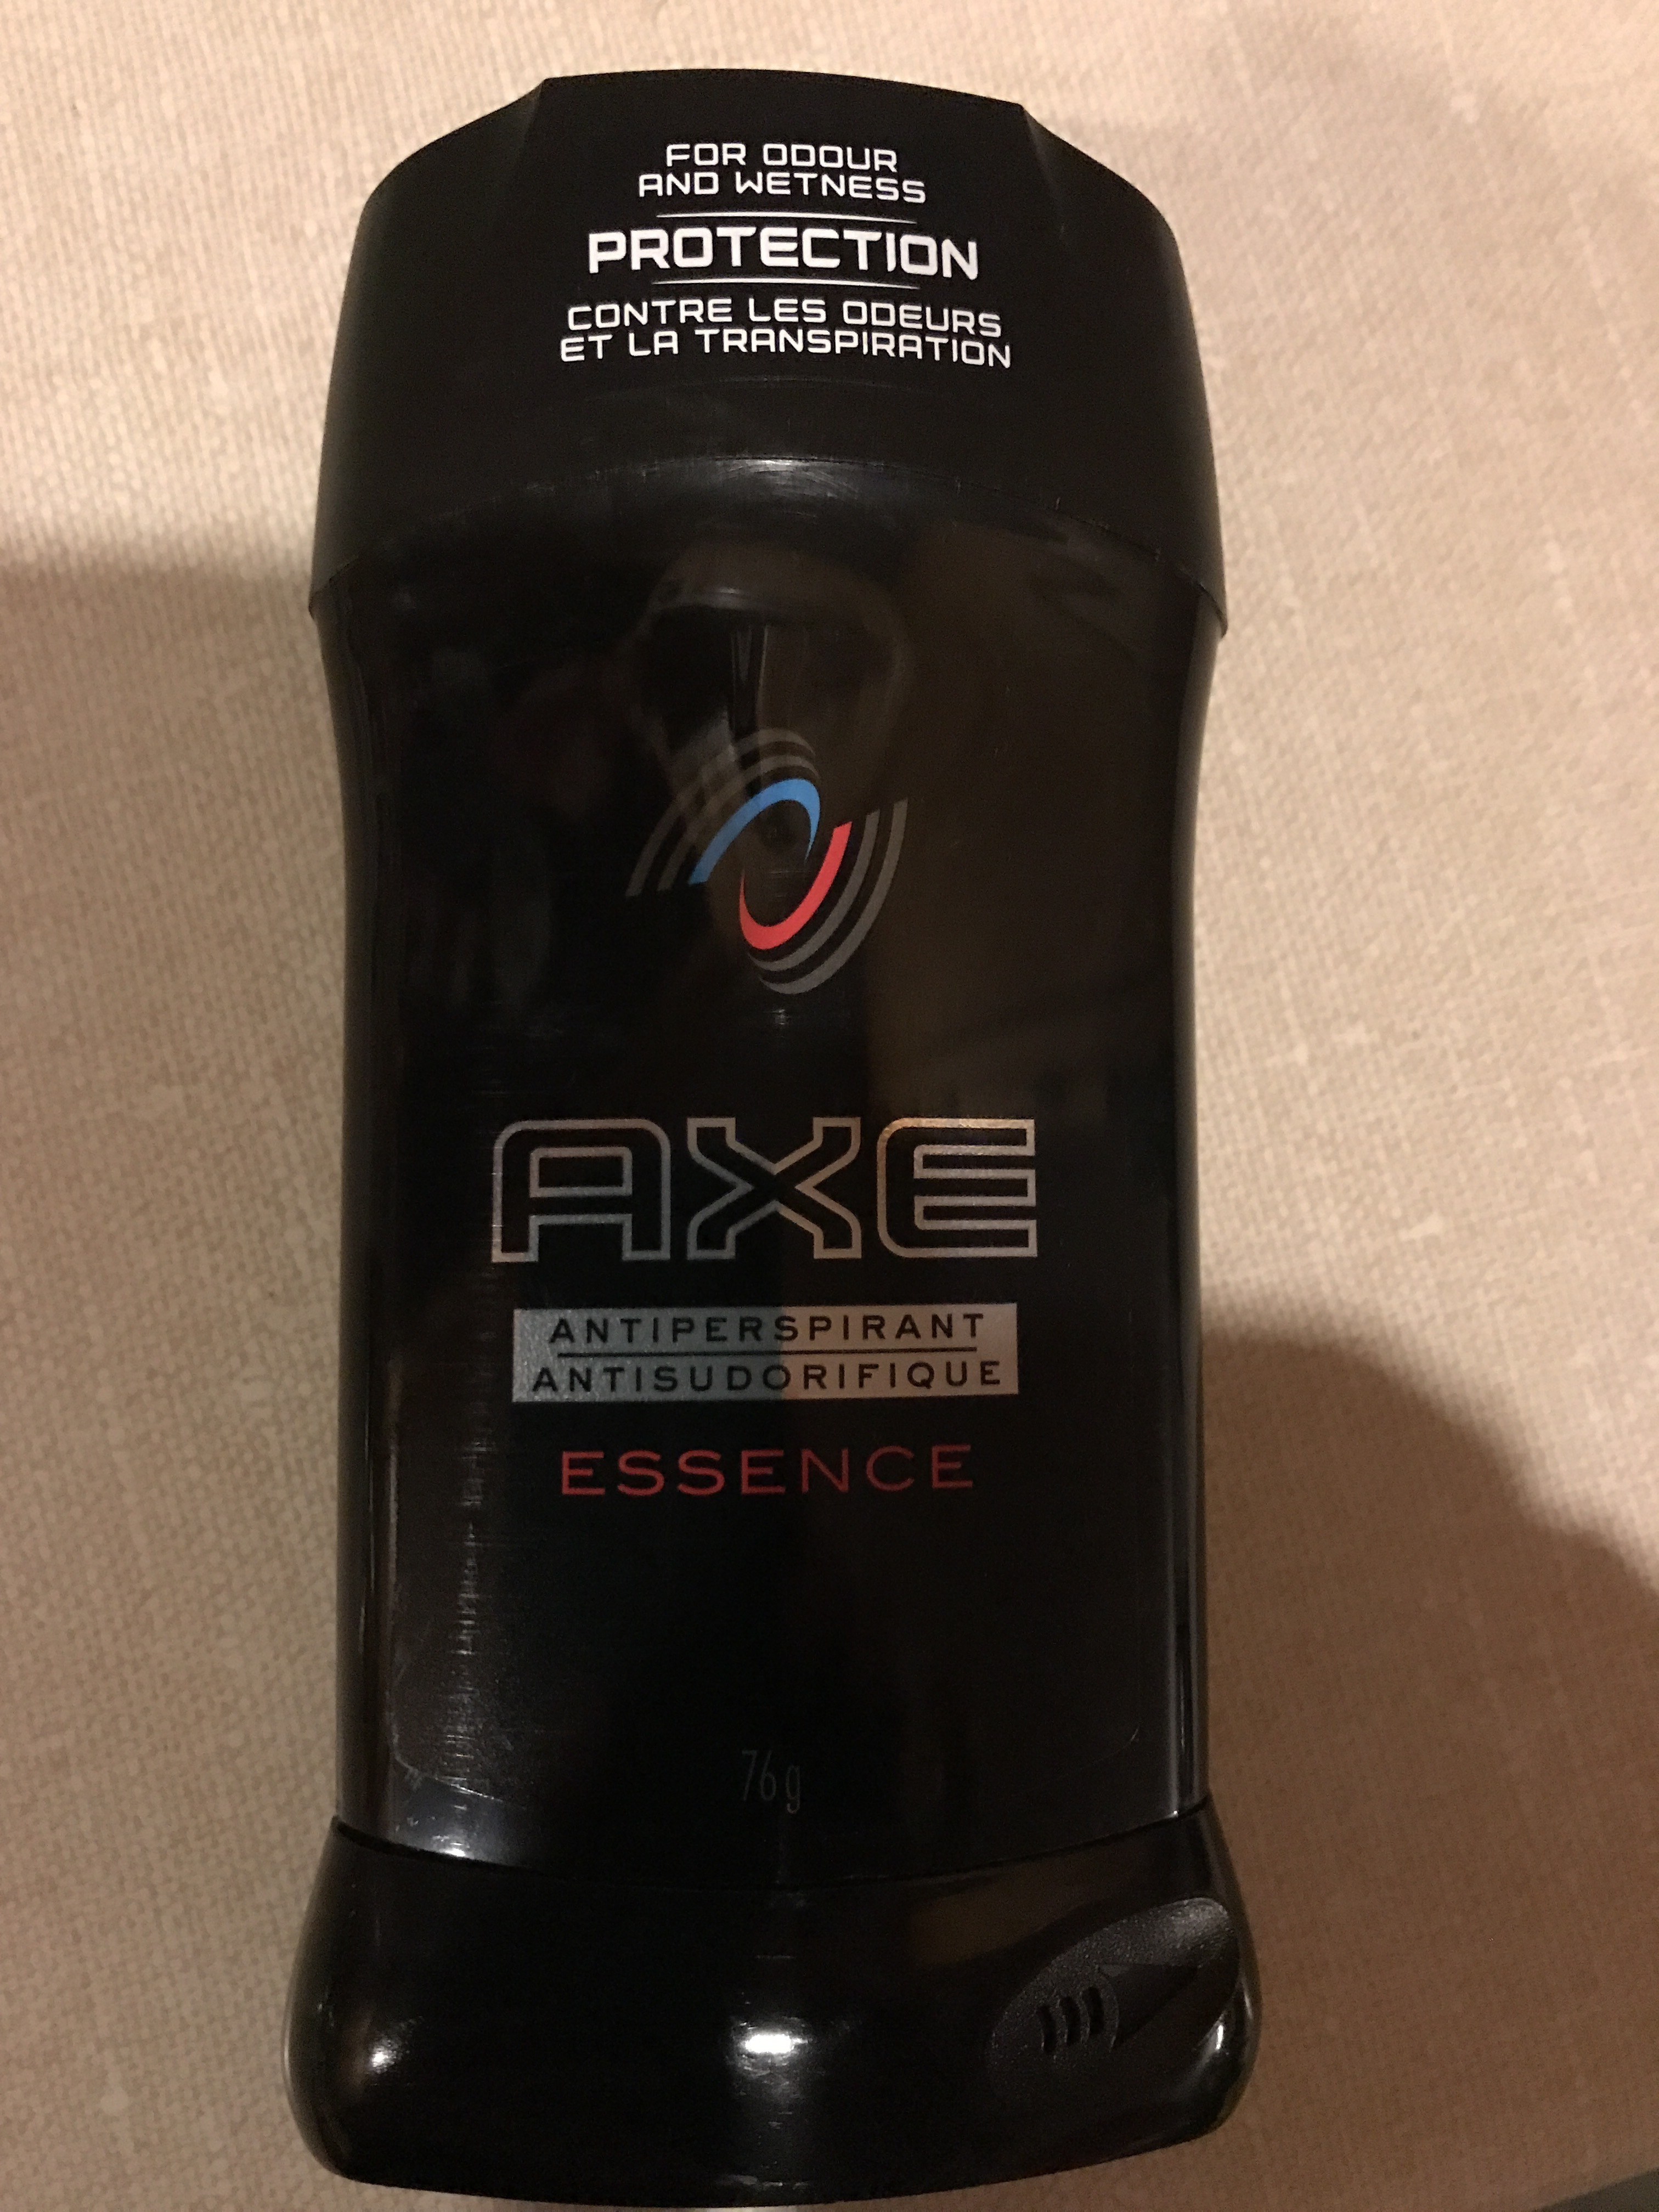 AXE Essence Antiperspirant Stick reviews in Anti-perspirant